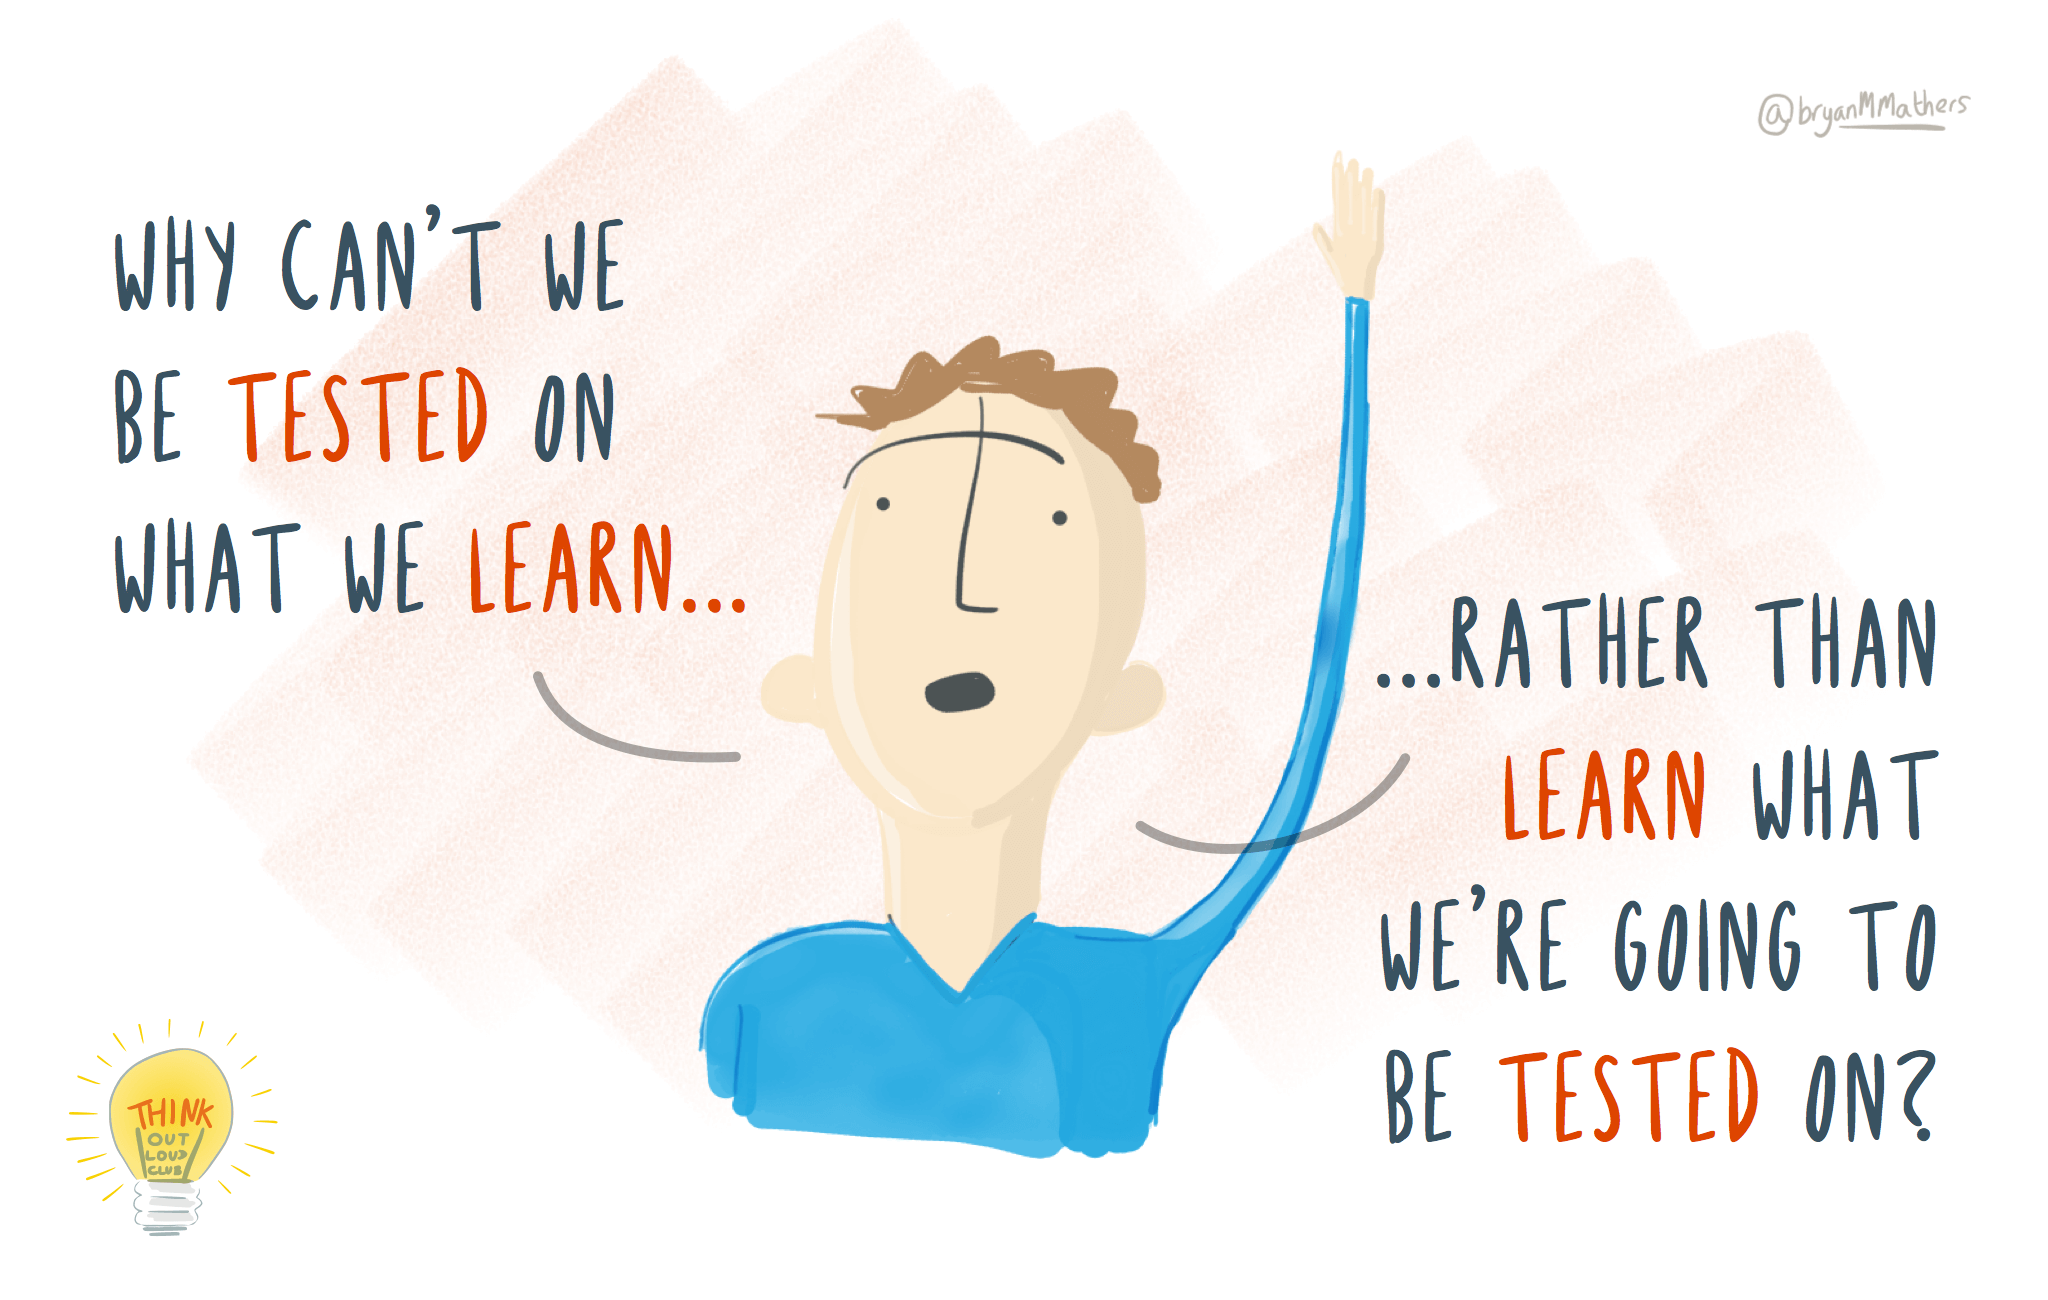 Why can't we be tested on what we learn?